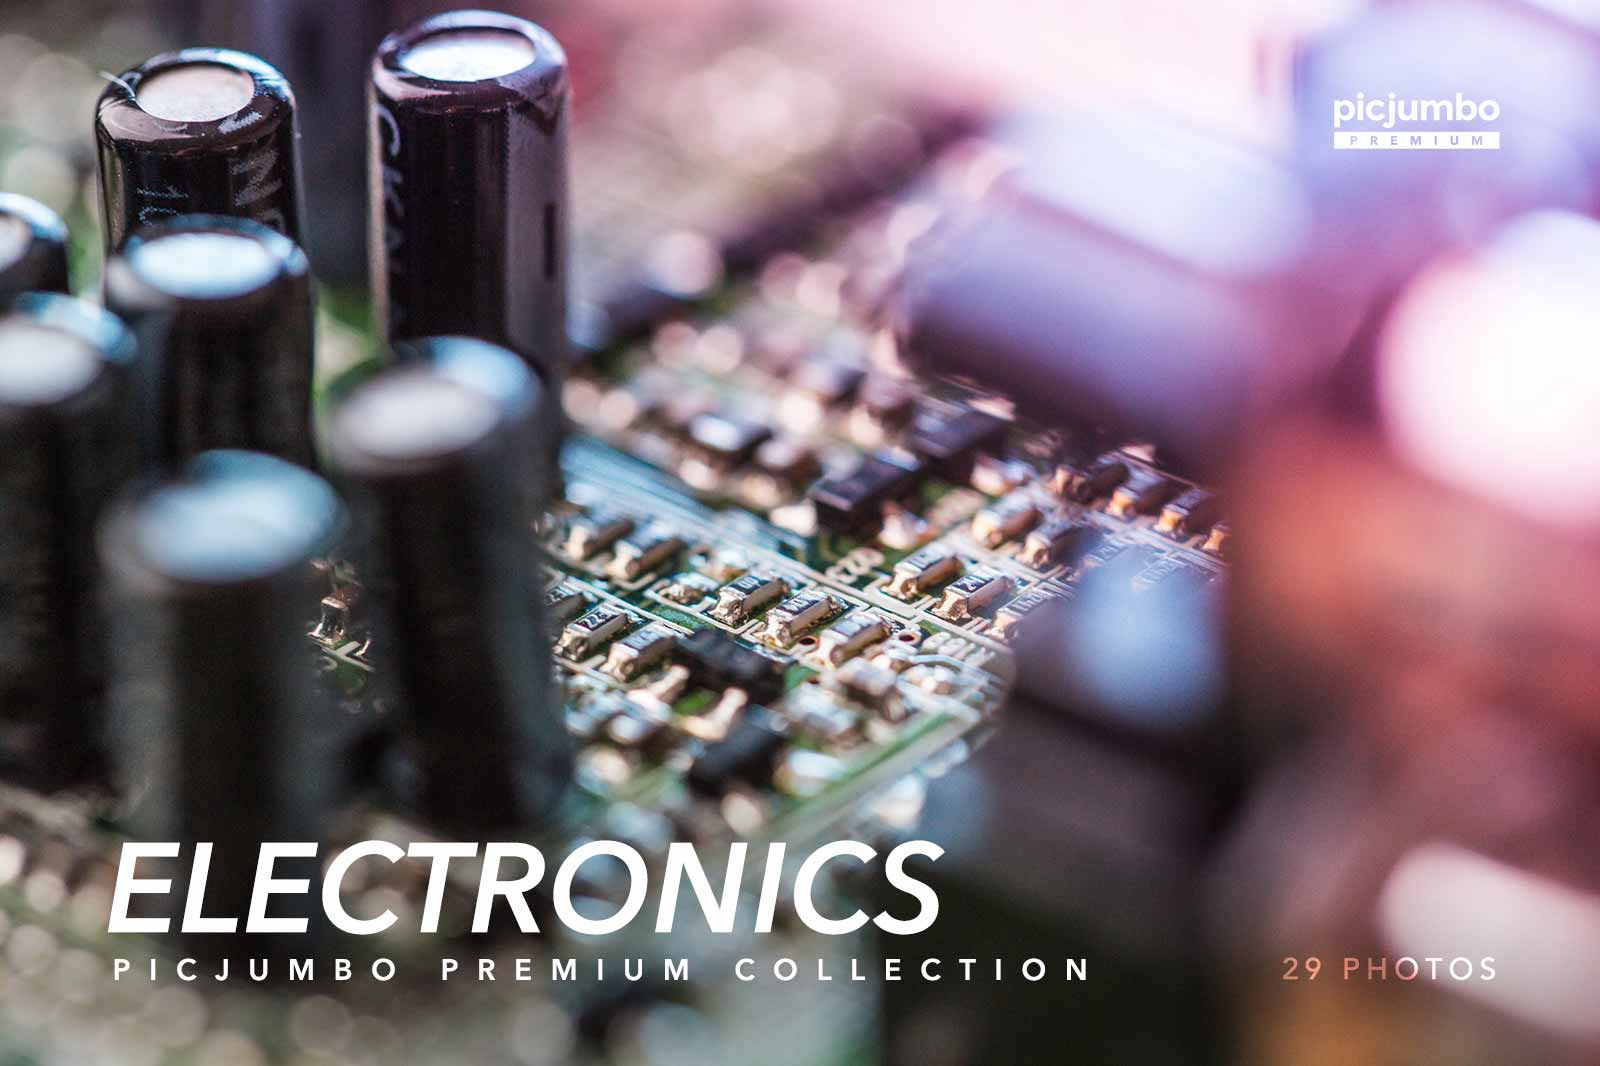 Electronics — get it now in picjumbo PREMIUM!